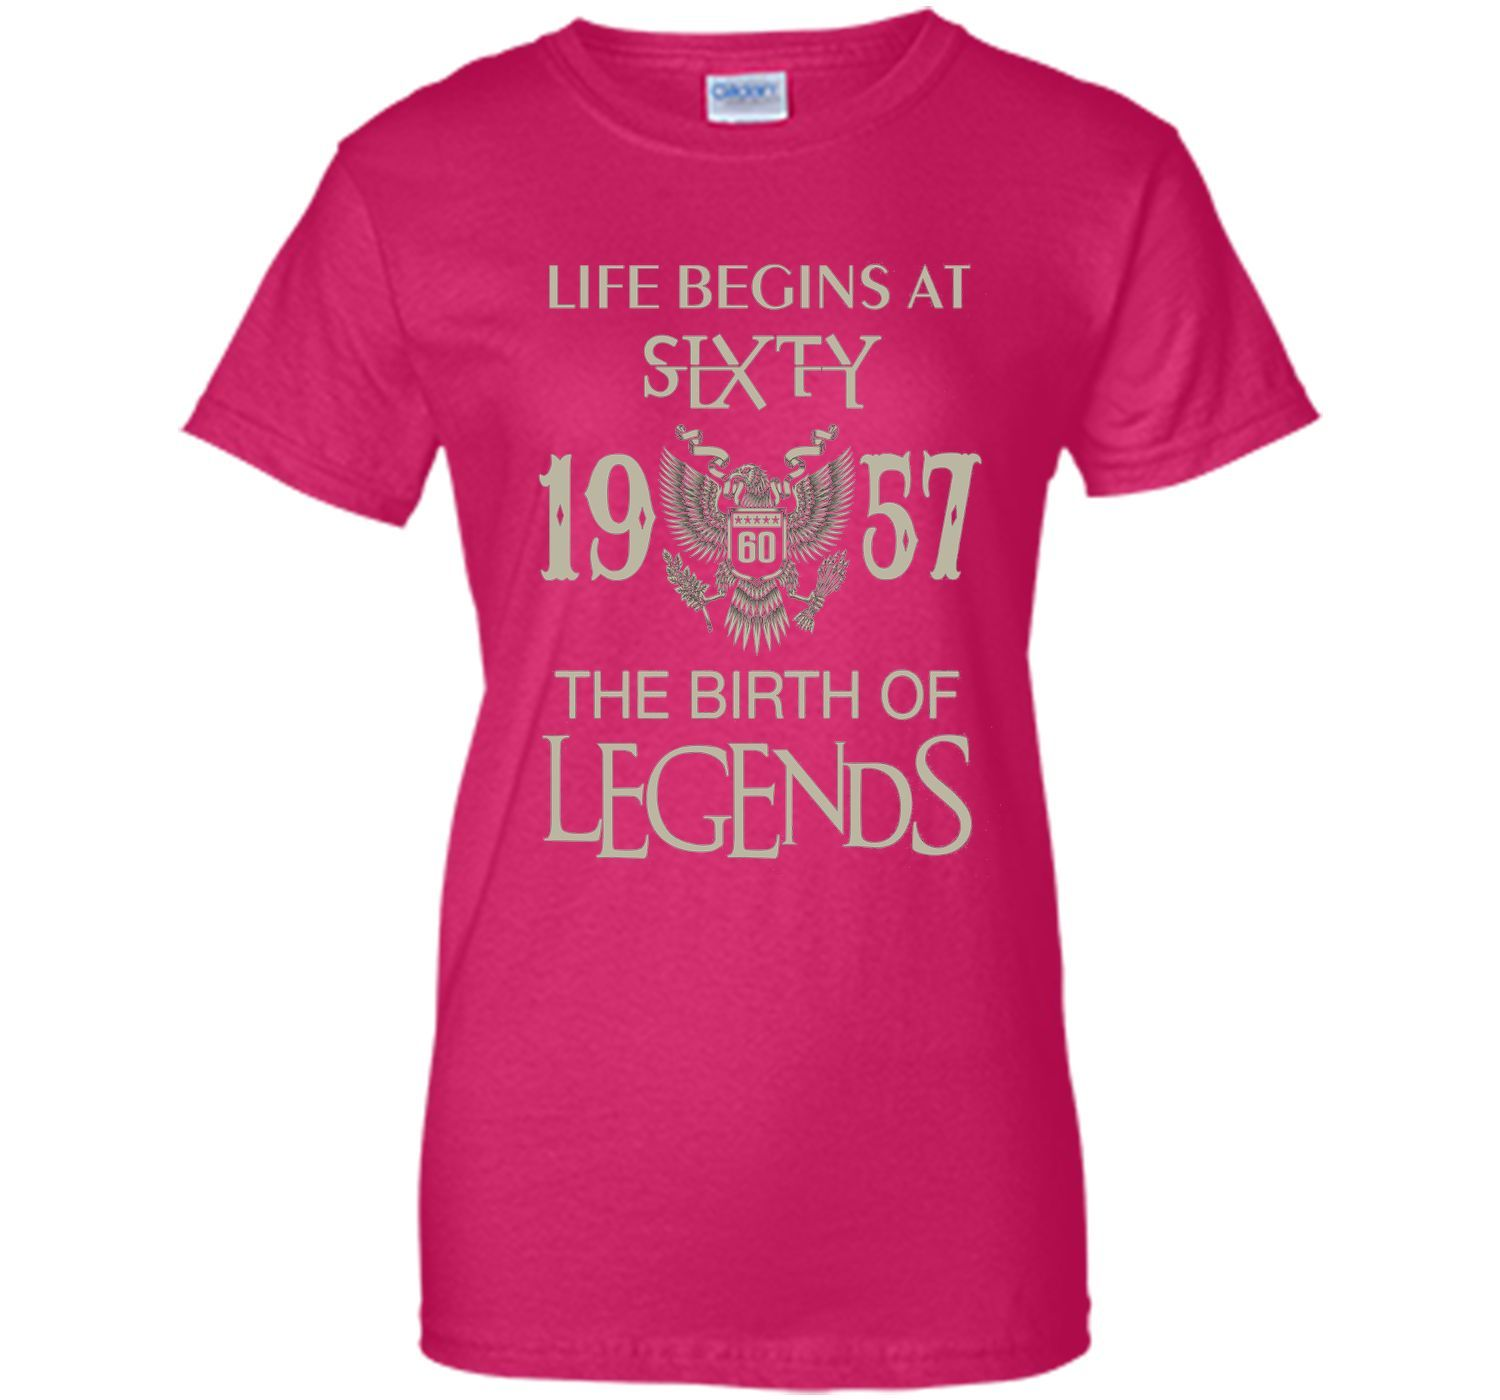 Life begins at Sixty - 1957 - The birth of legends